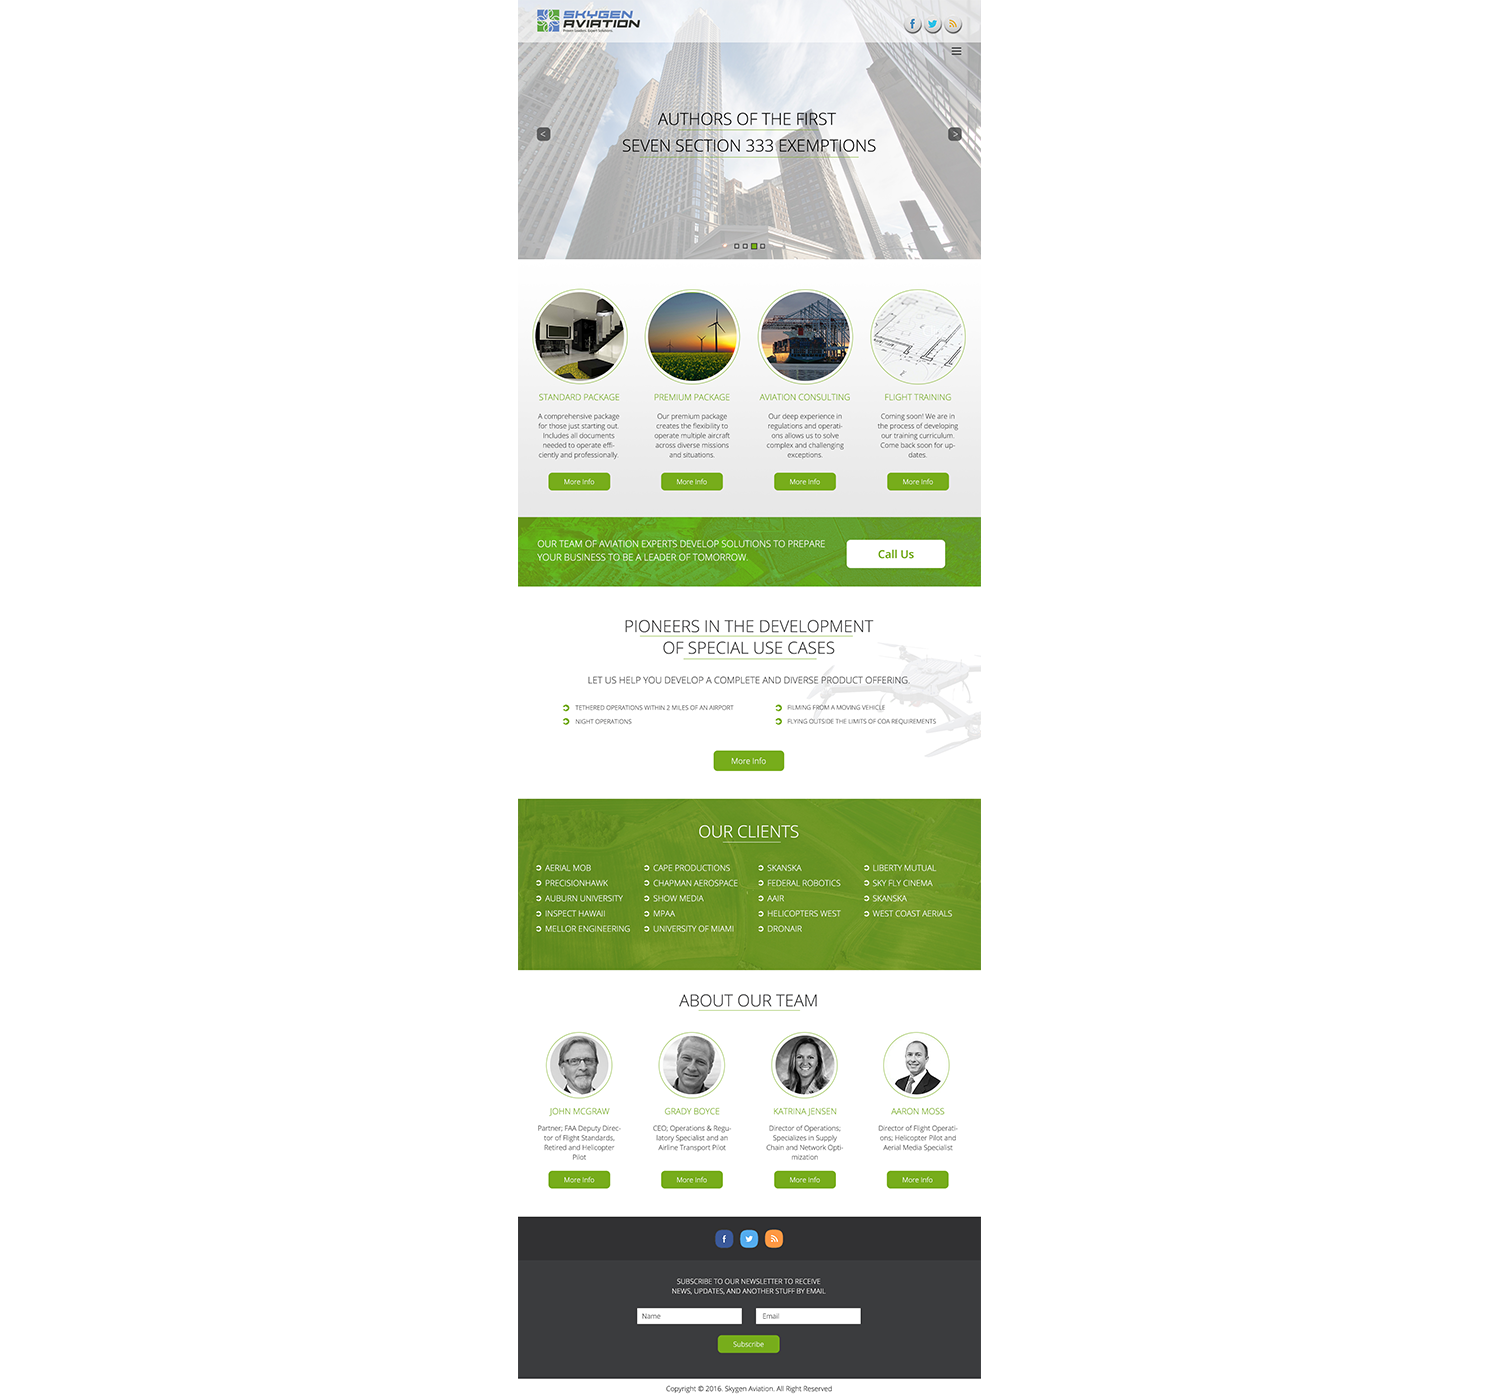 Professional Bold Agribusiness Web Design For Skygen Aviation By 5stardesigners Design 9513409